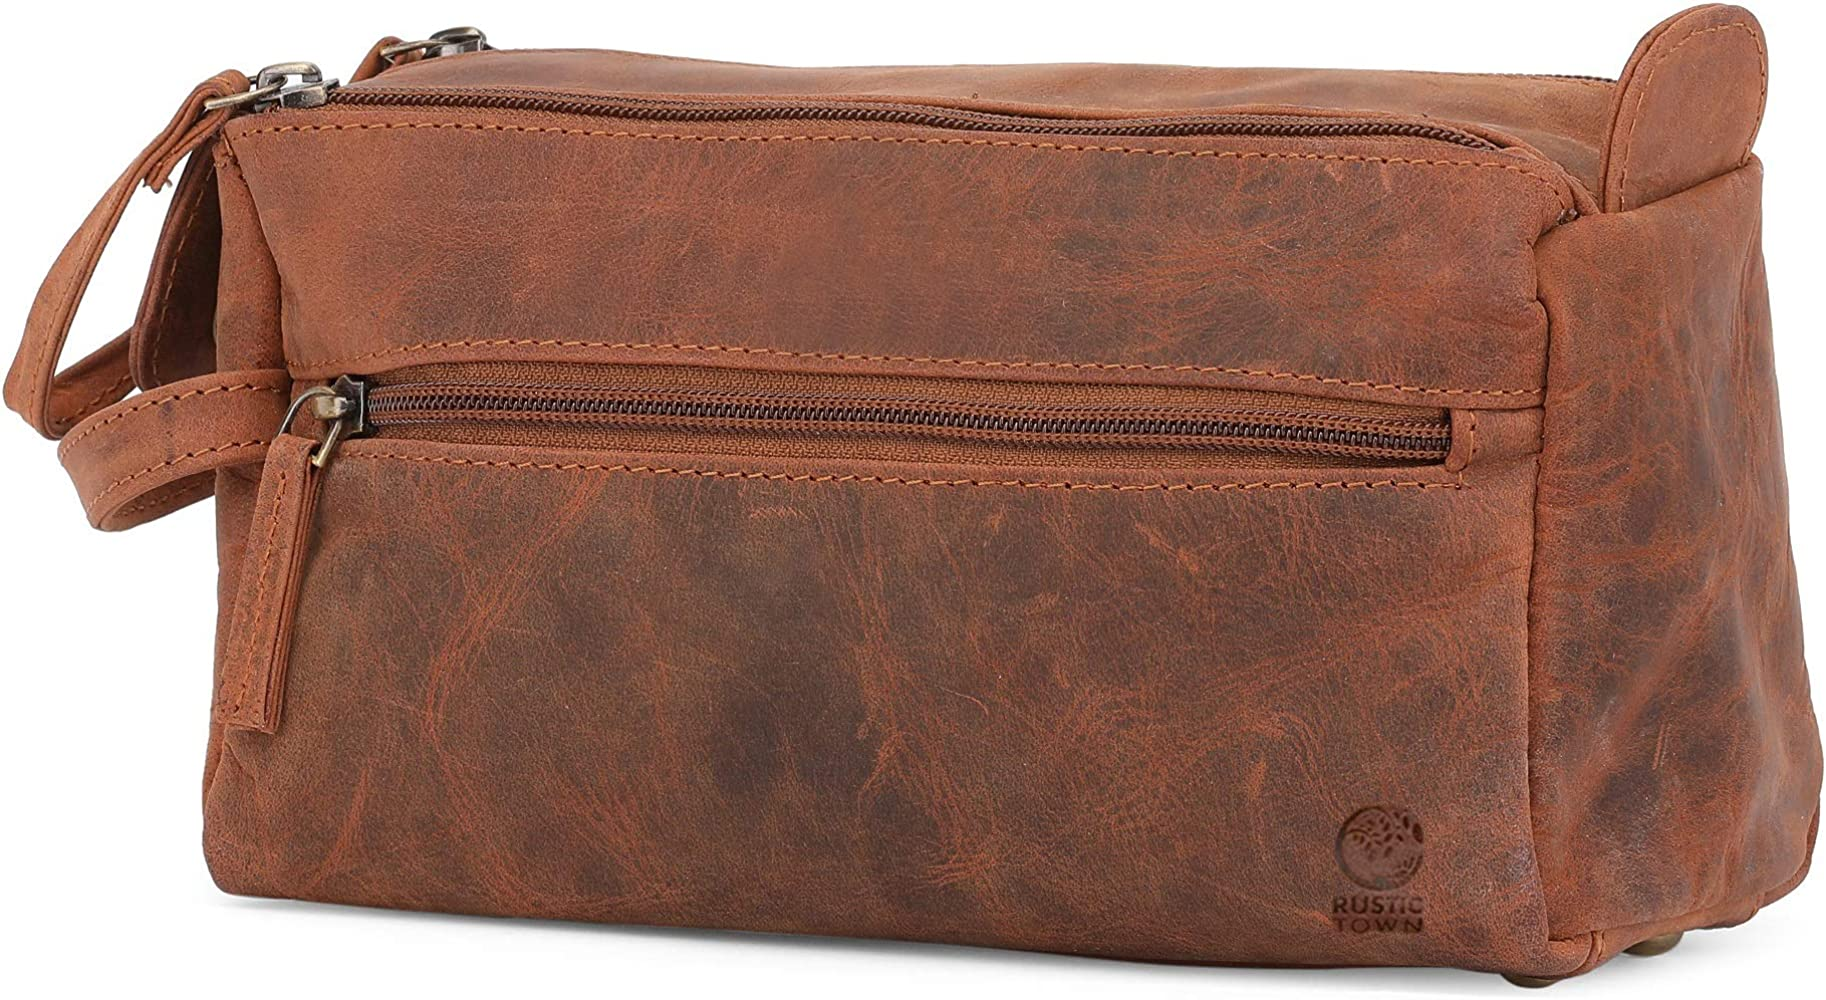 2968ffeaf703 Leather Toiletry Bag for Men - Hygiene Organizer Travel Dopp Kit By Rustic  Town